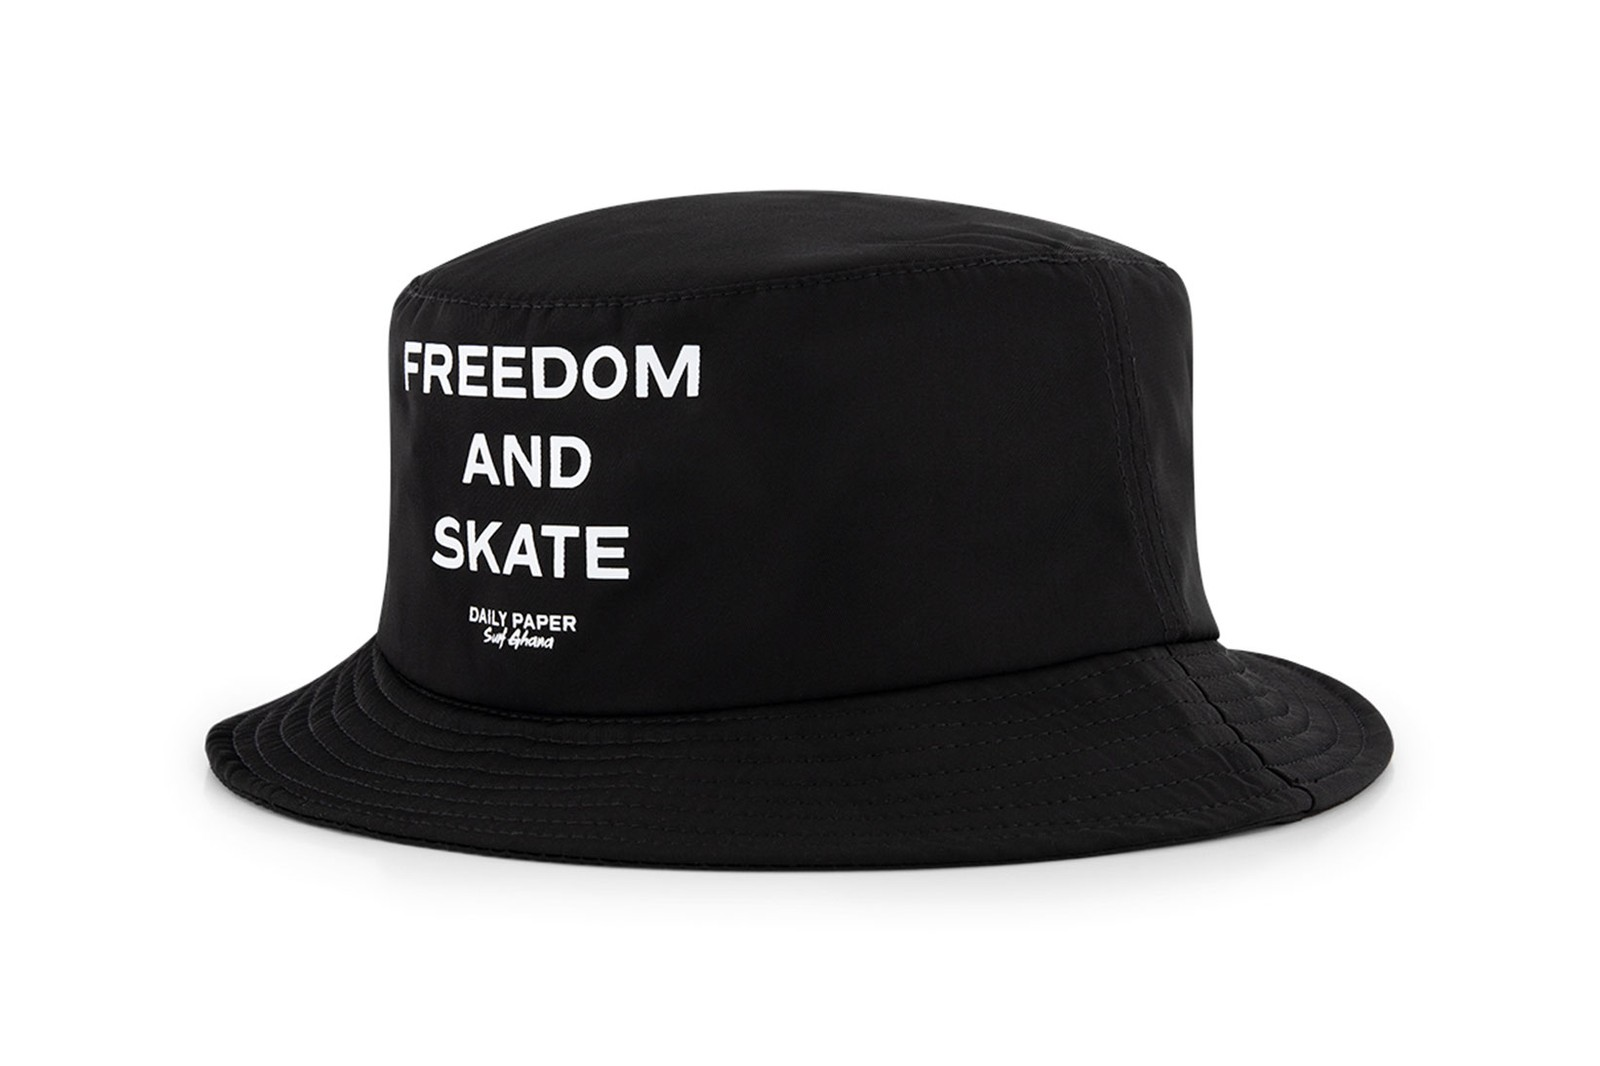 off-white daily paper surf ghana first freedom skate park collaboration t-shirts bucket hats